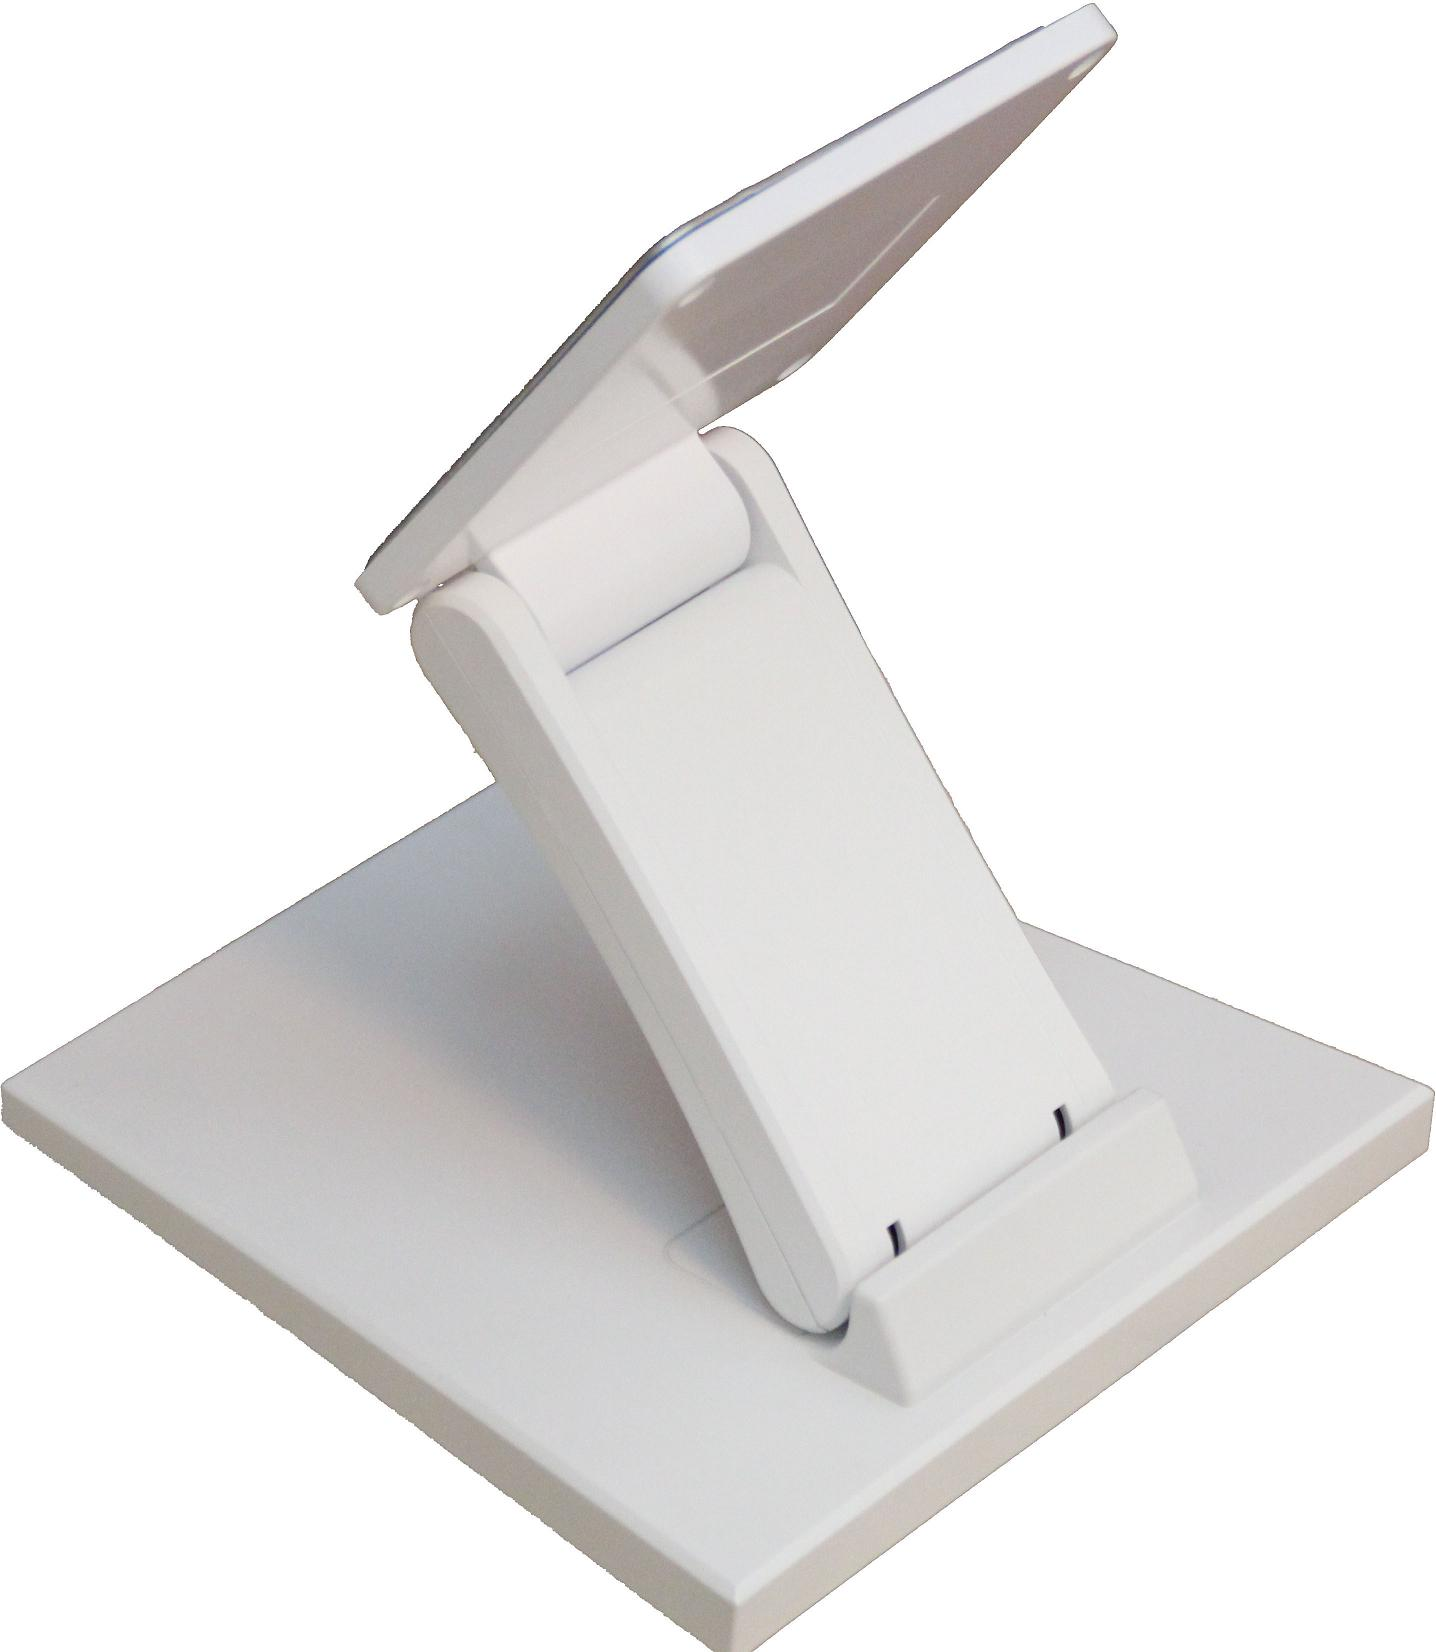 Universal Lcd Computer Display Aoc Tpv Hp Touch Desktop Stand White Patent Base